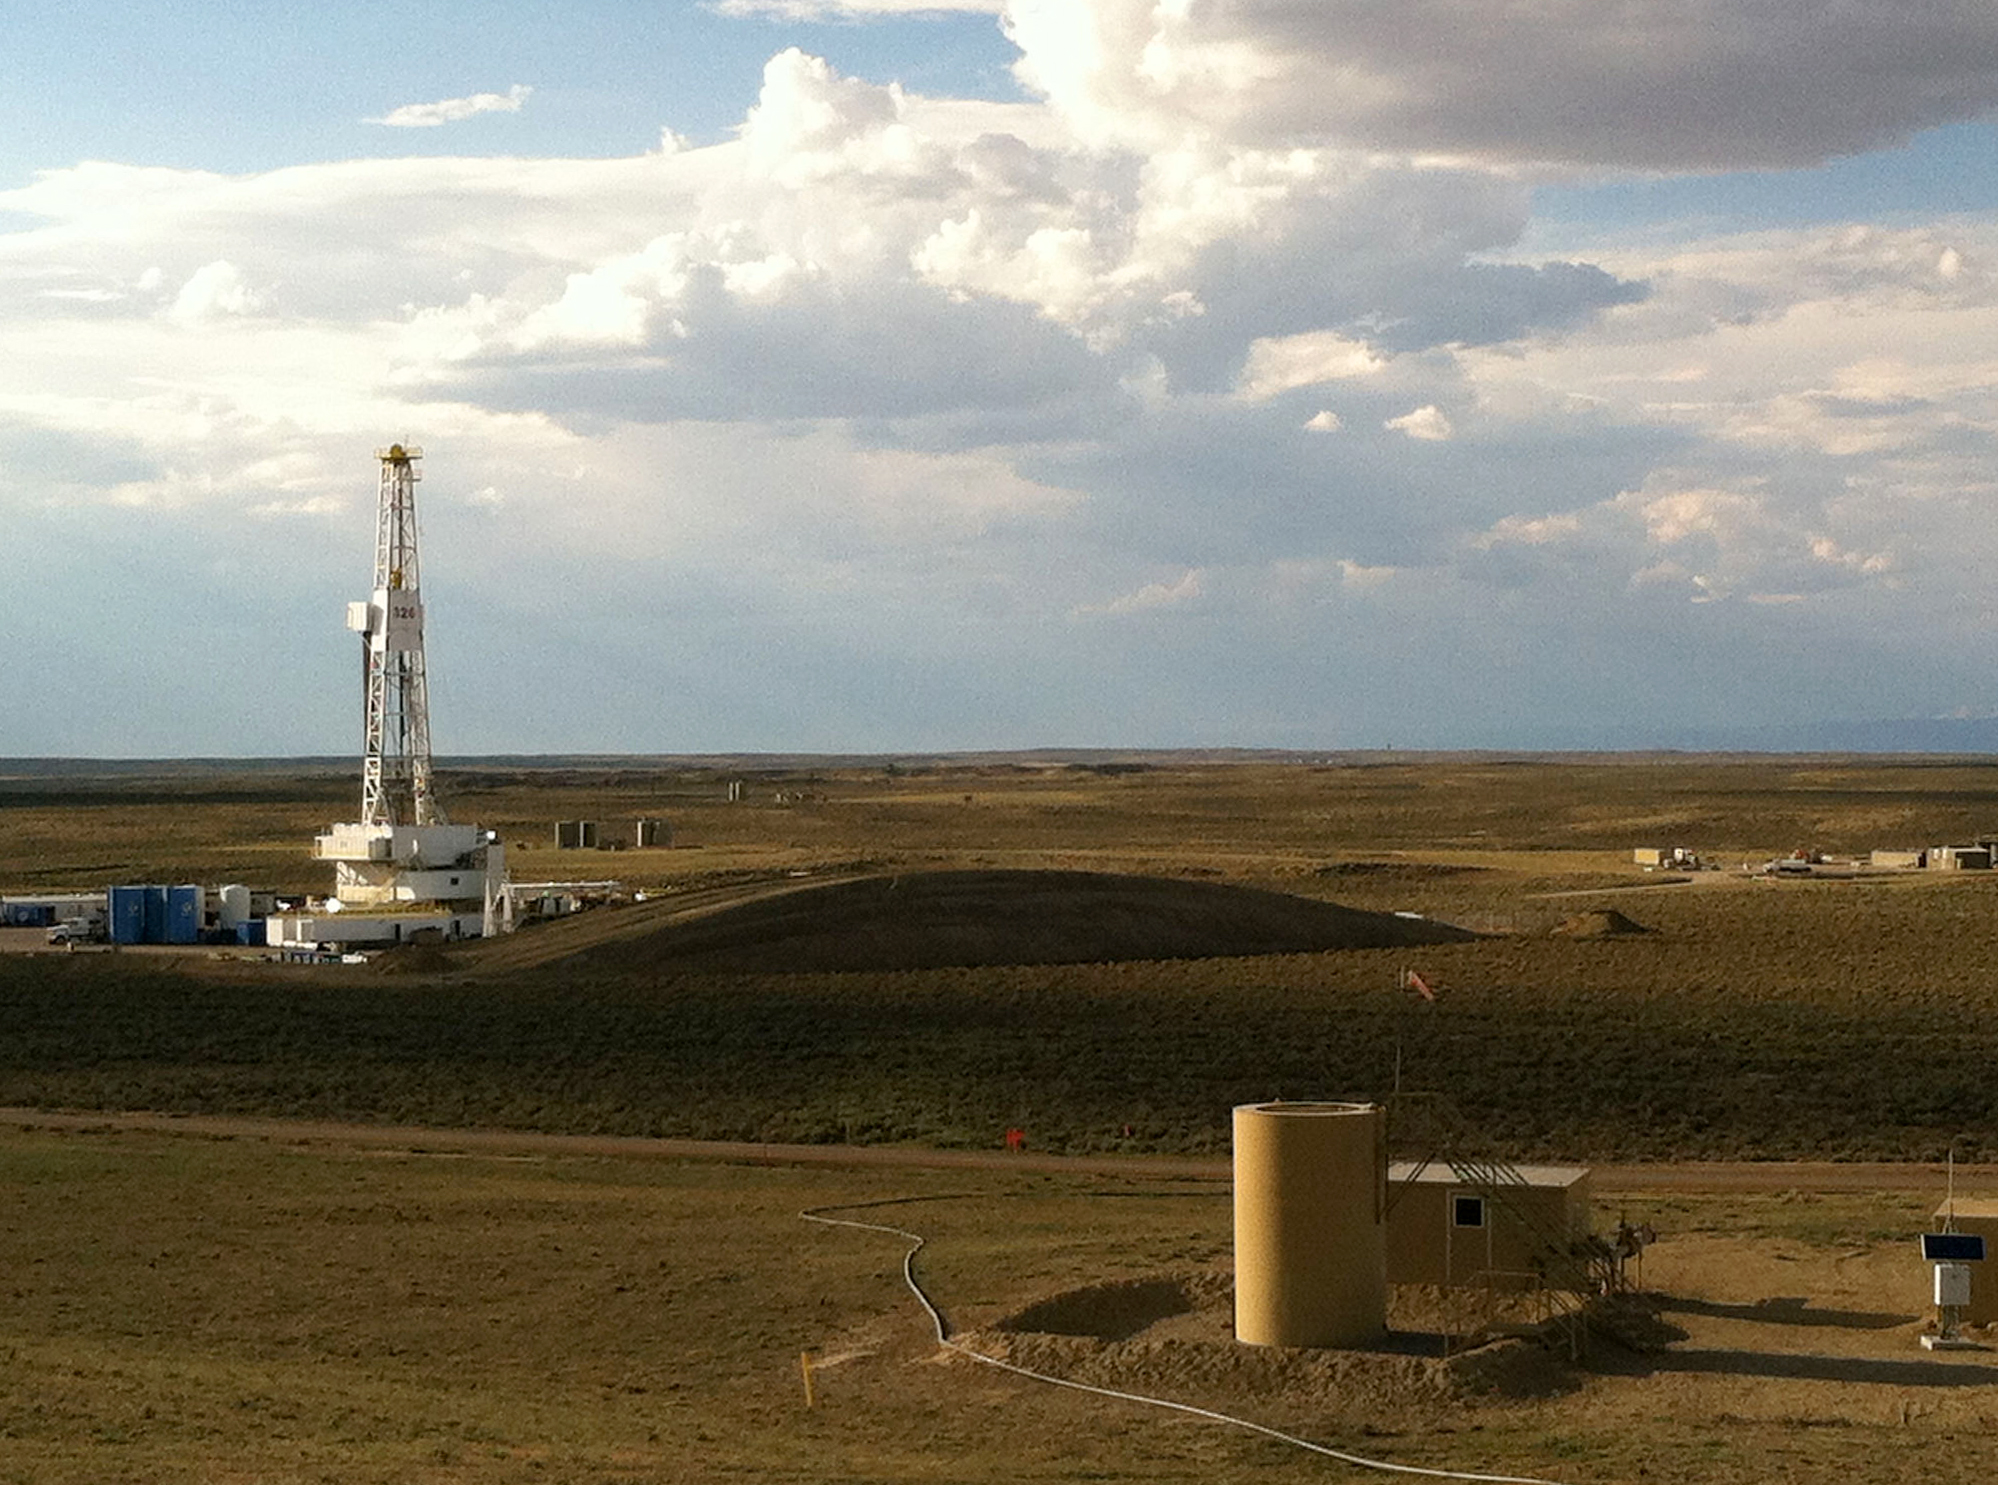 Fracking wells in Wyoming